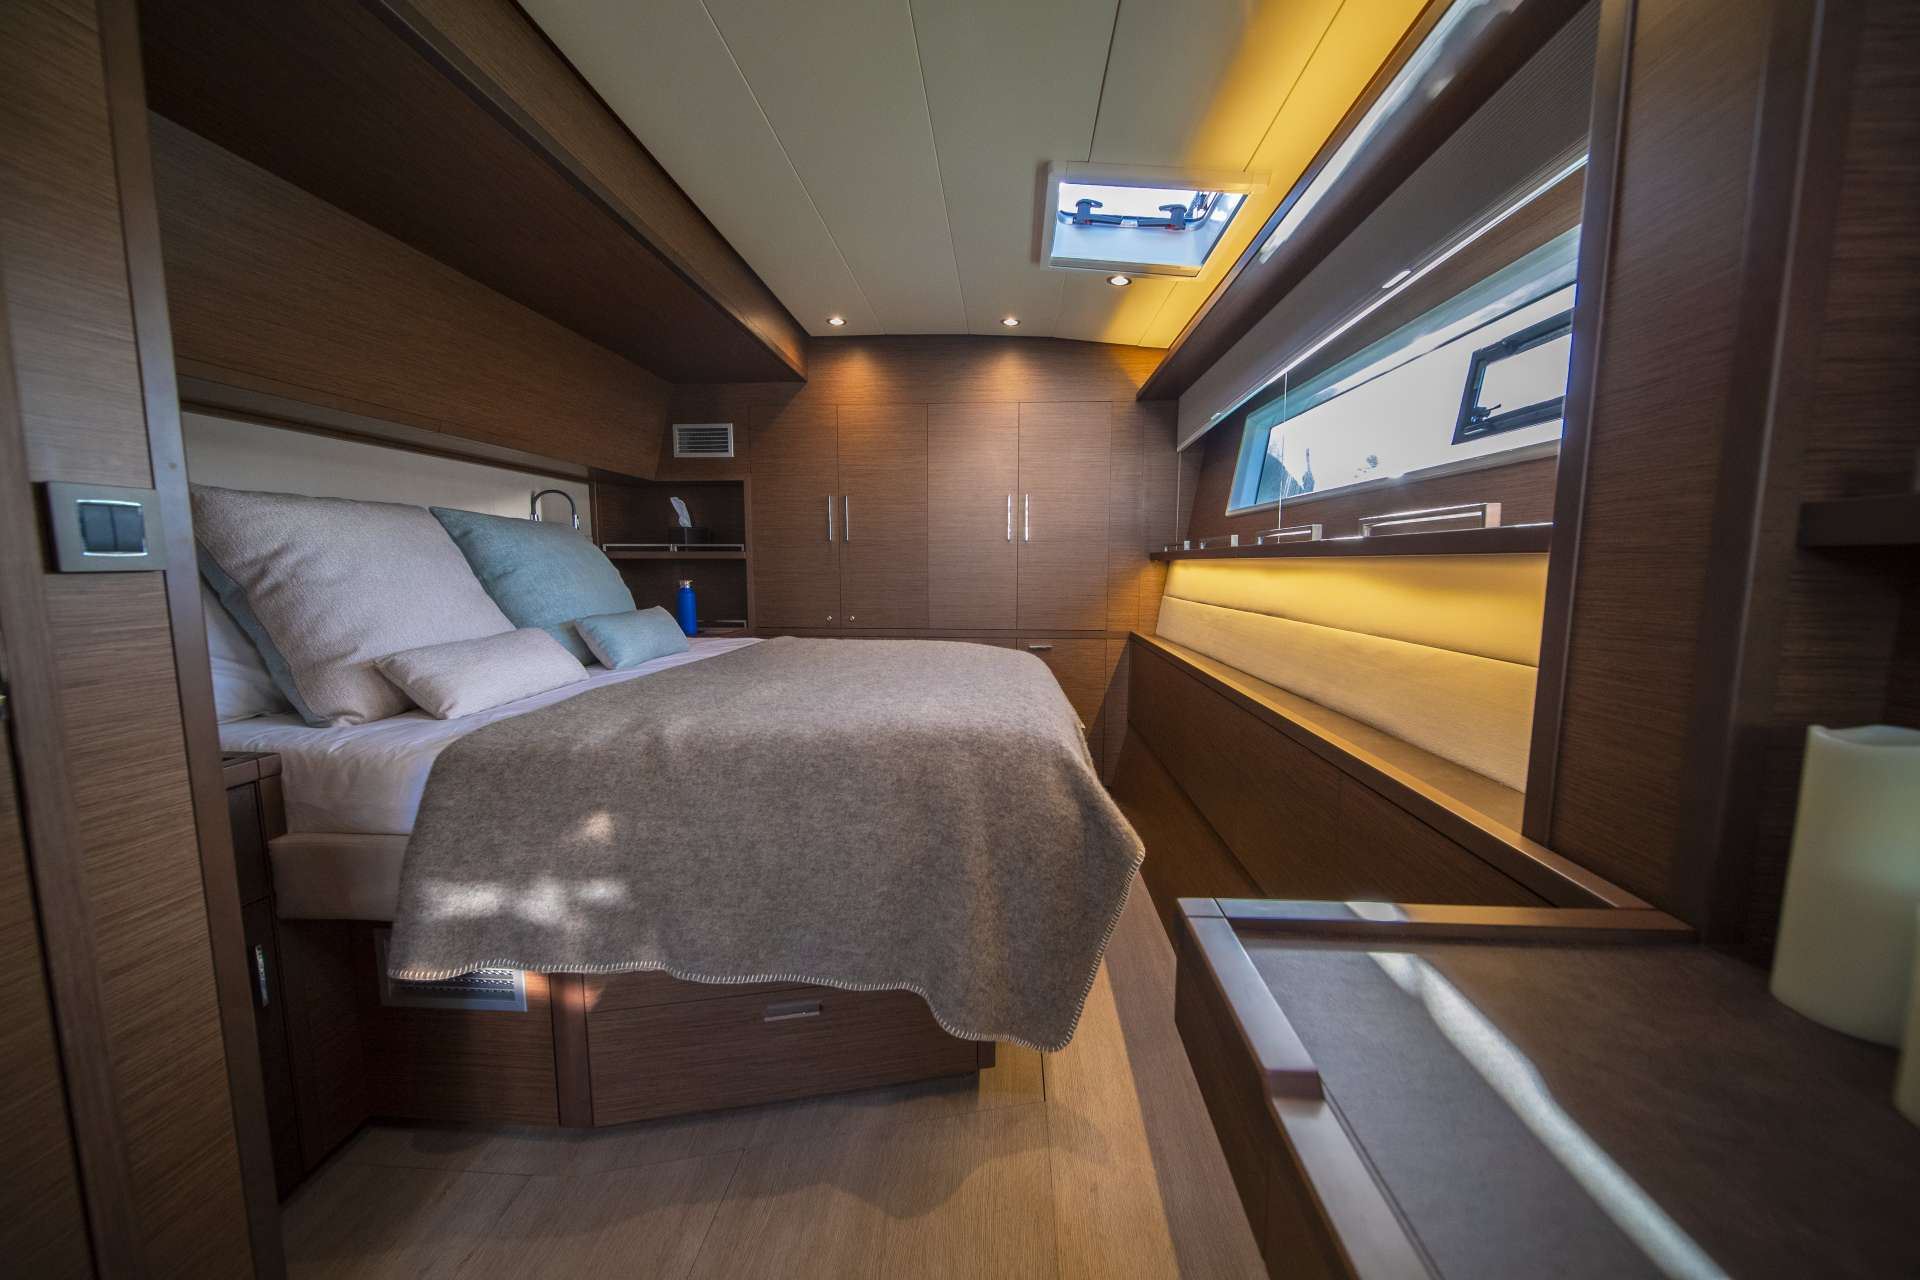 Charter Serenity Vii